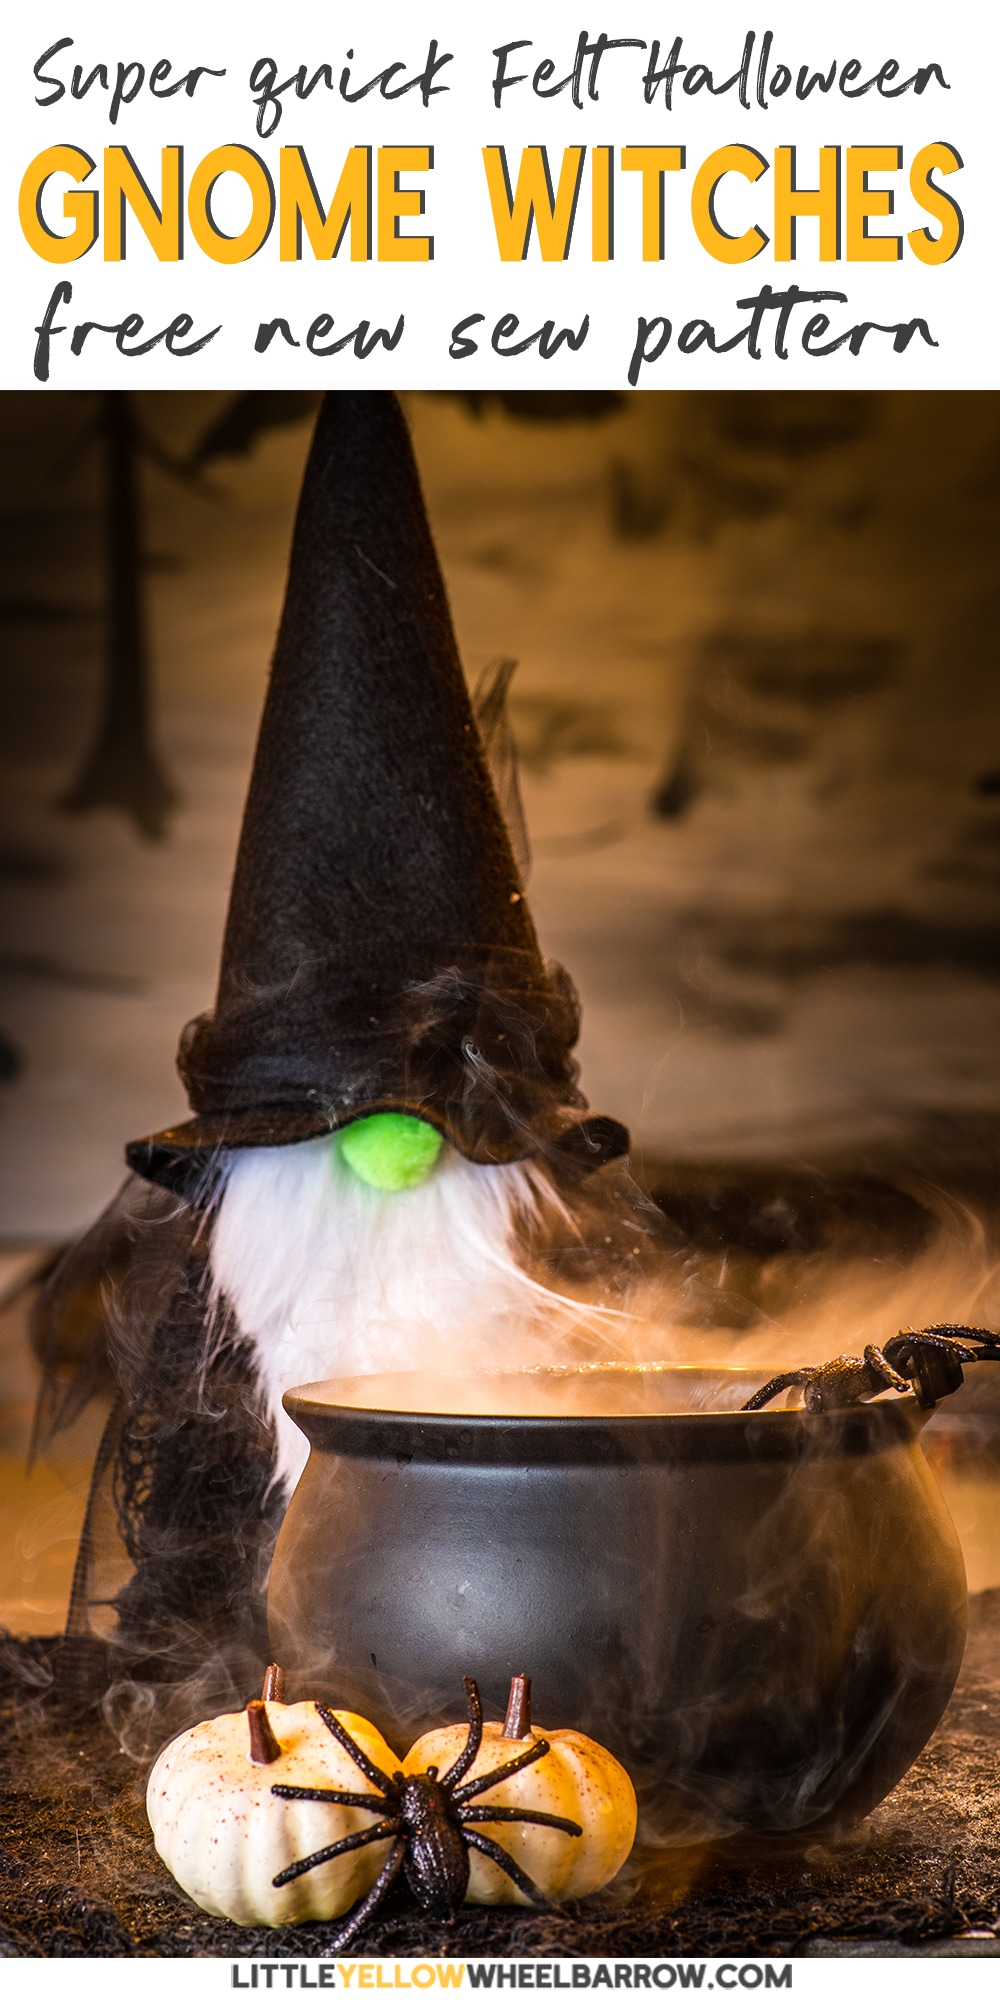 Super adorable felt gnome witches you can make for a Halloween candy display. This easy Halloween craft project takes no time to pull together and can be made with inexpensive materials found at the dollar store. This DIY project would make a great Halloween candy display, or for a Halloween mantle.